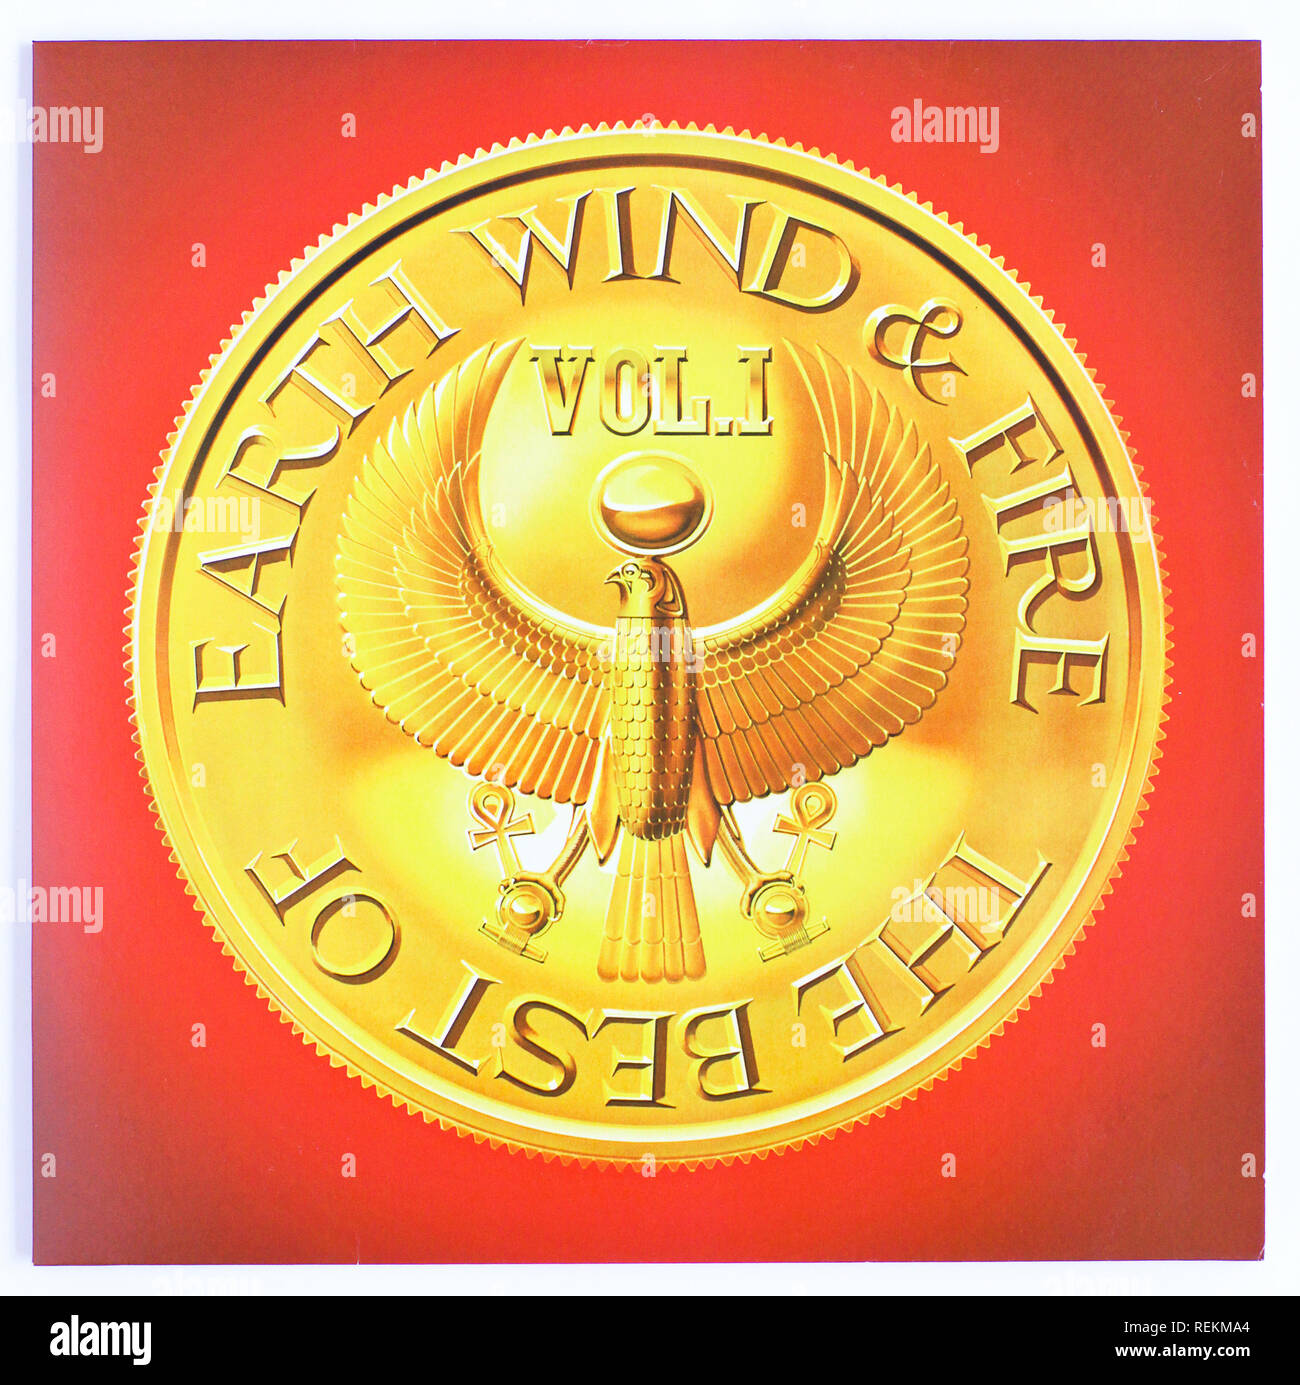 The cover of The Best of Earth, Wind & Fire Vol 1 by Earth, Wind & Fire. 1978 album on Columbia Records - Stock Image